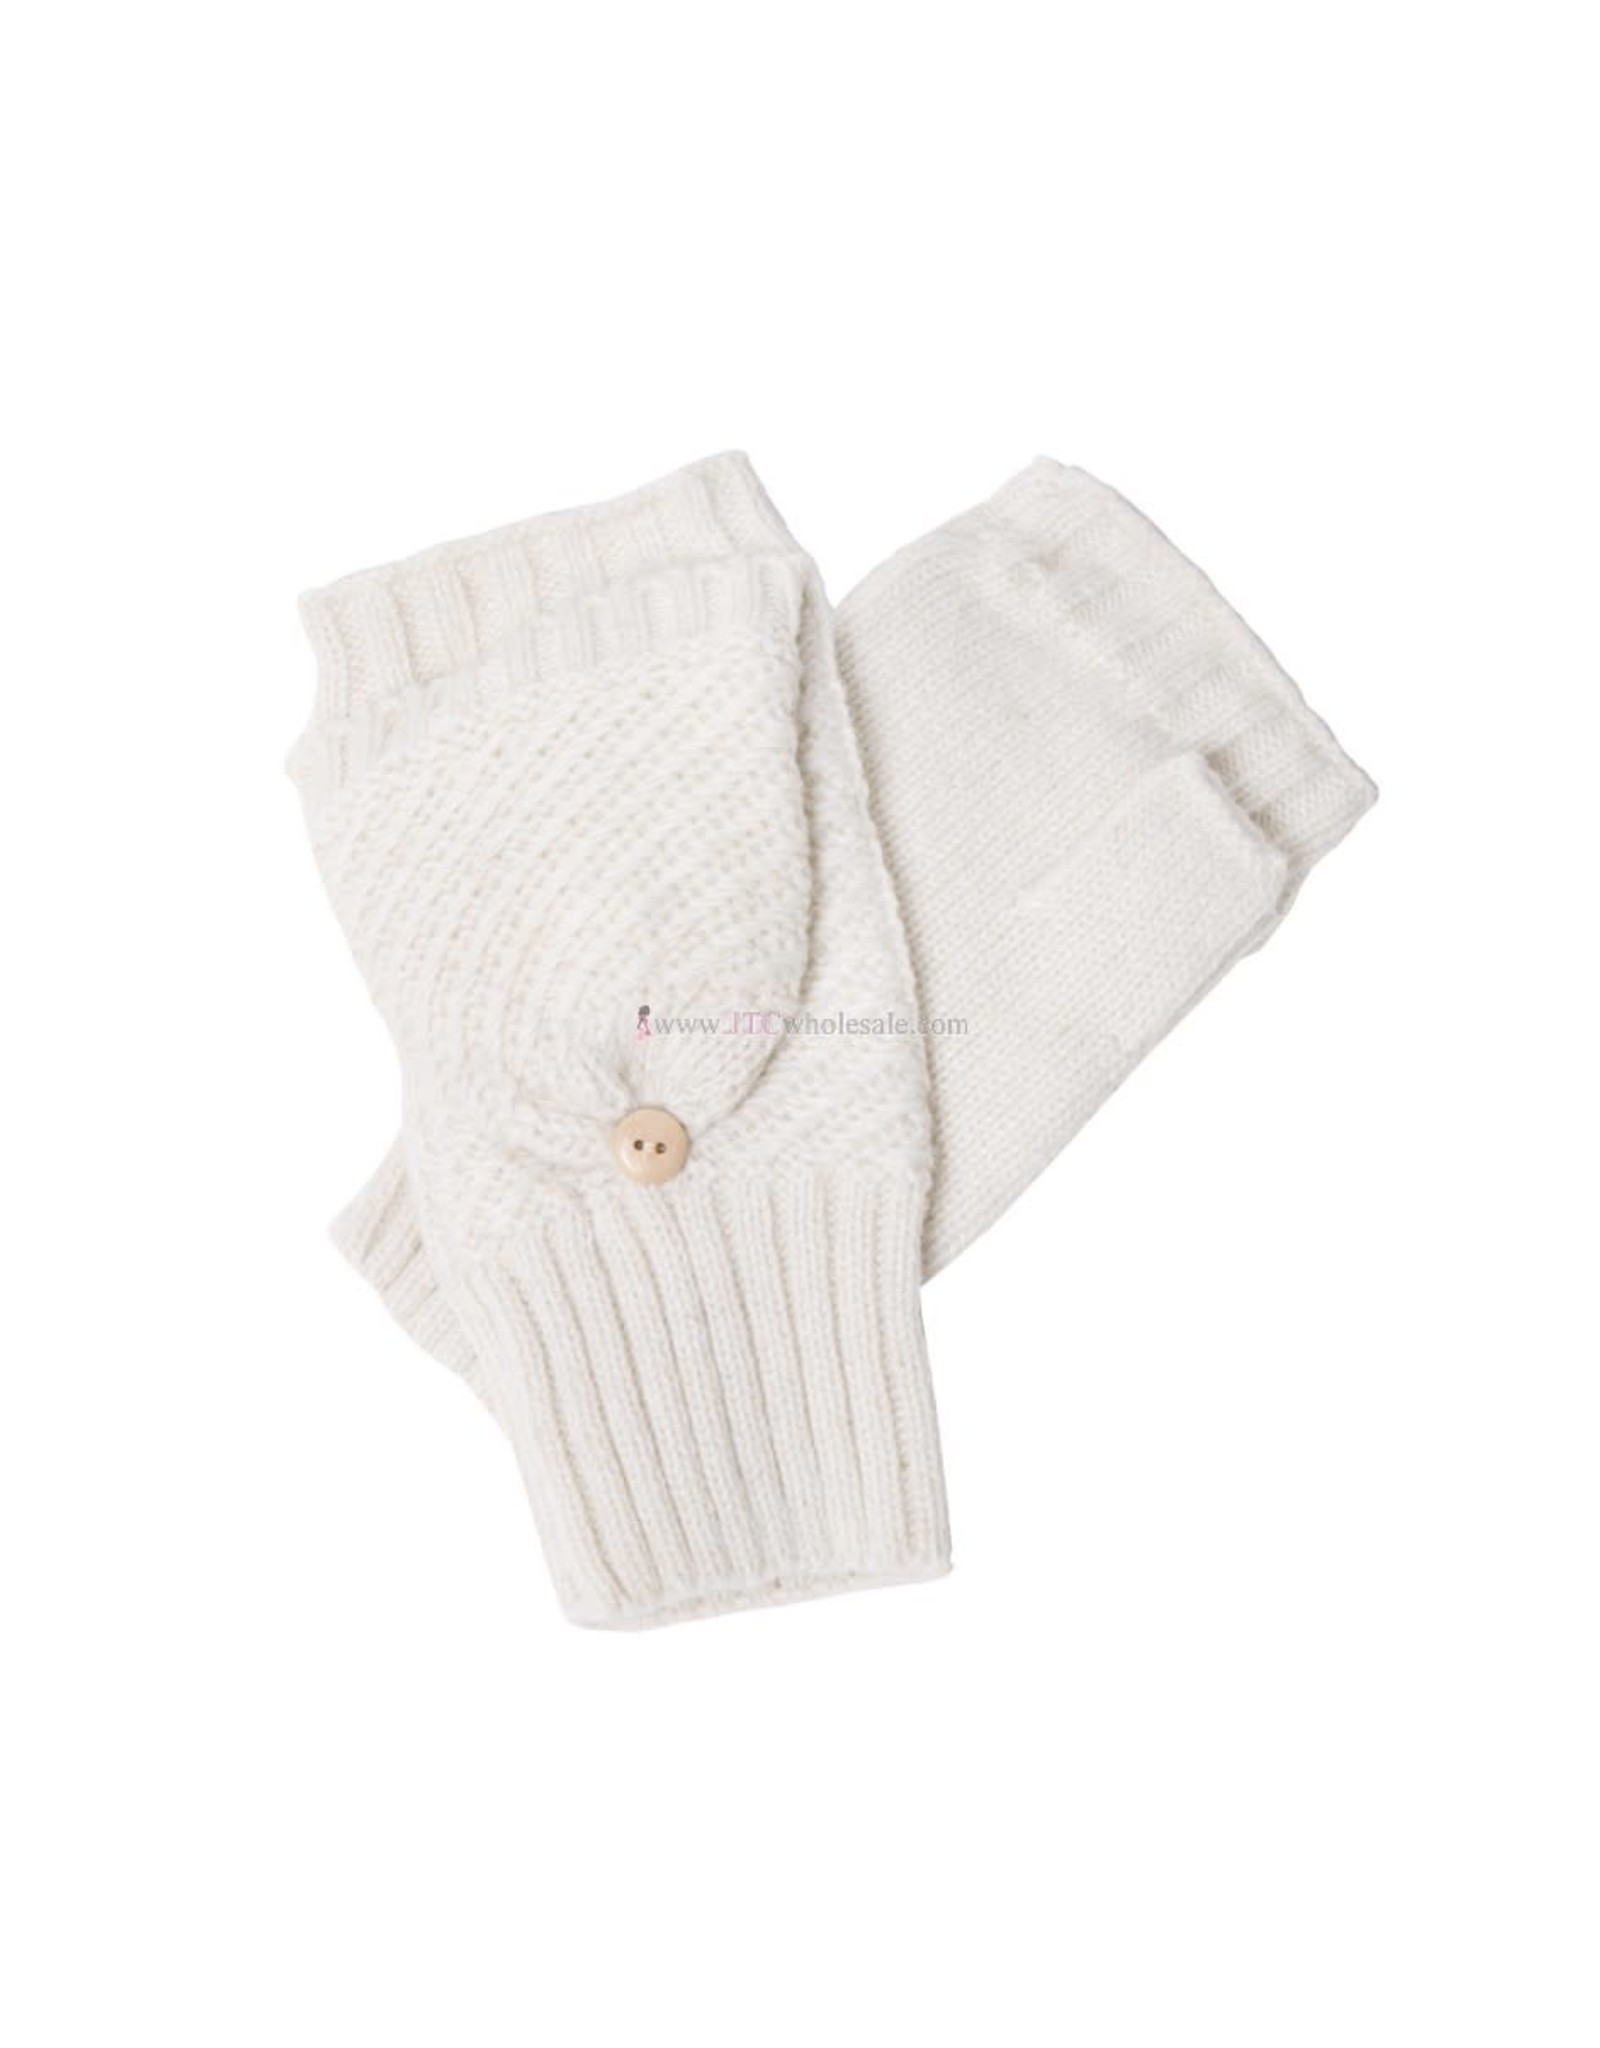 JTC JTC BUTTON MITTEN - WHITE